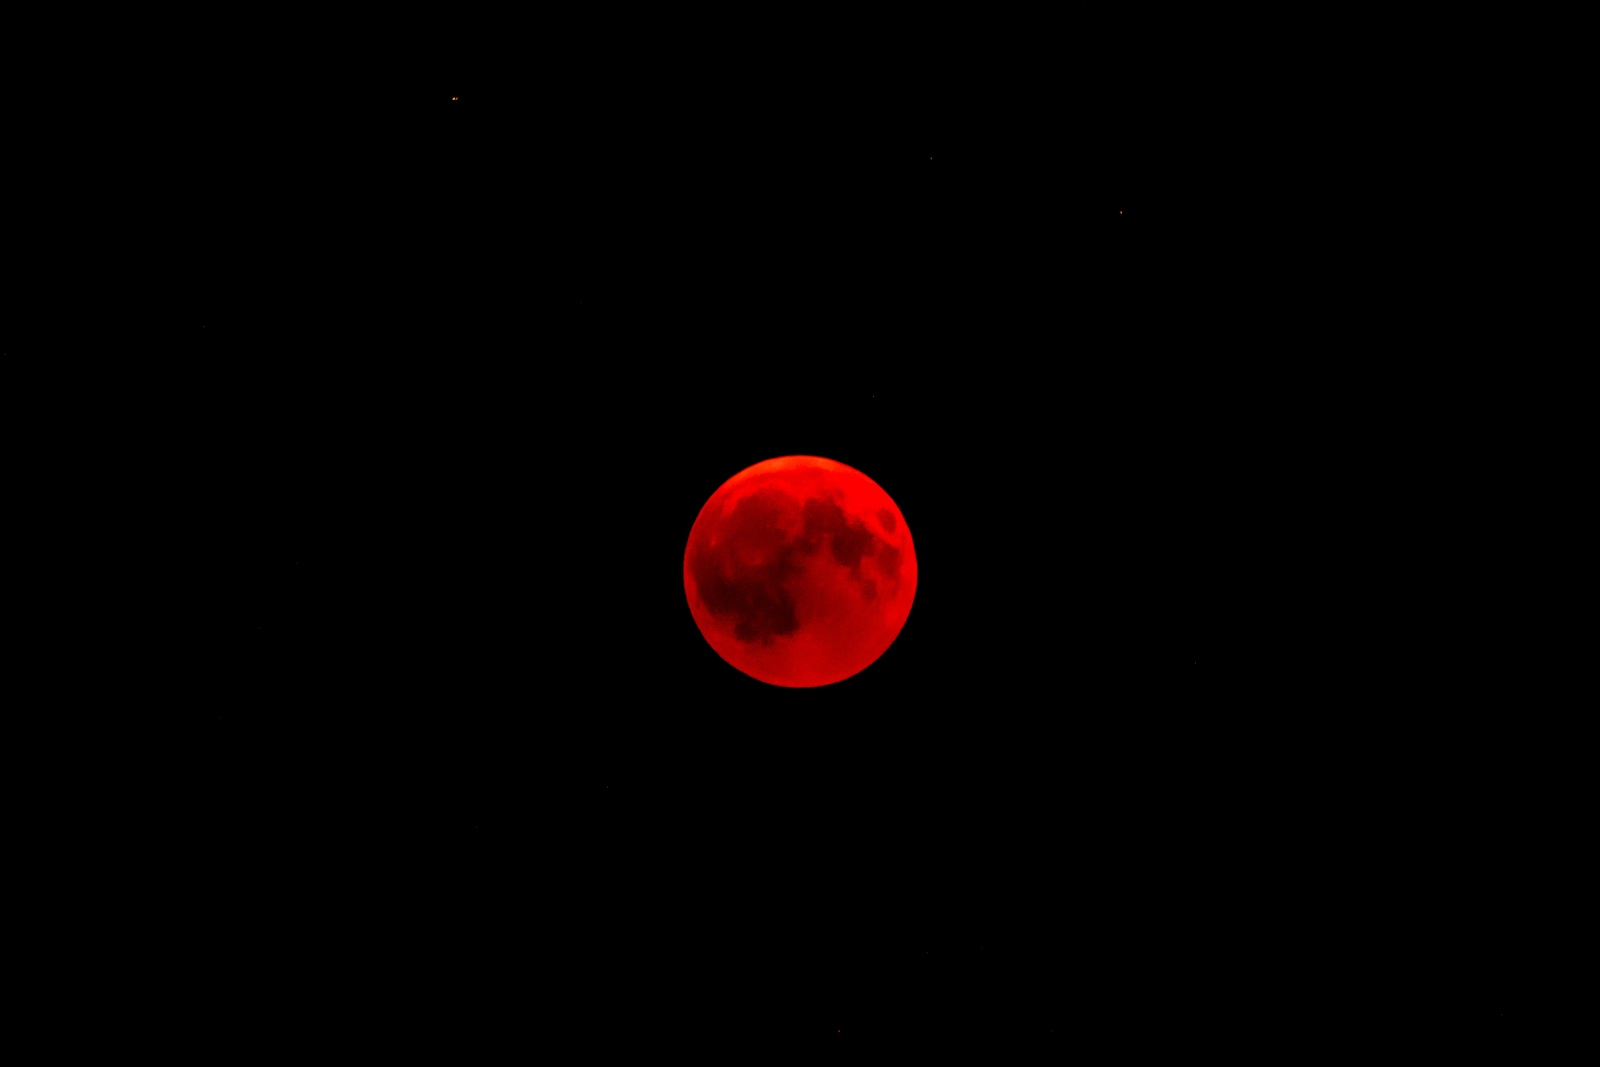 100+ Red colors images: Red is the color of fire and blood